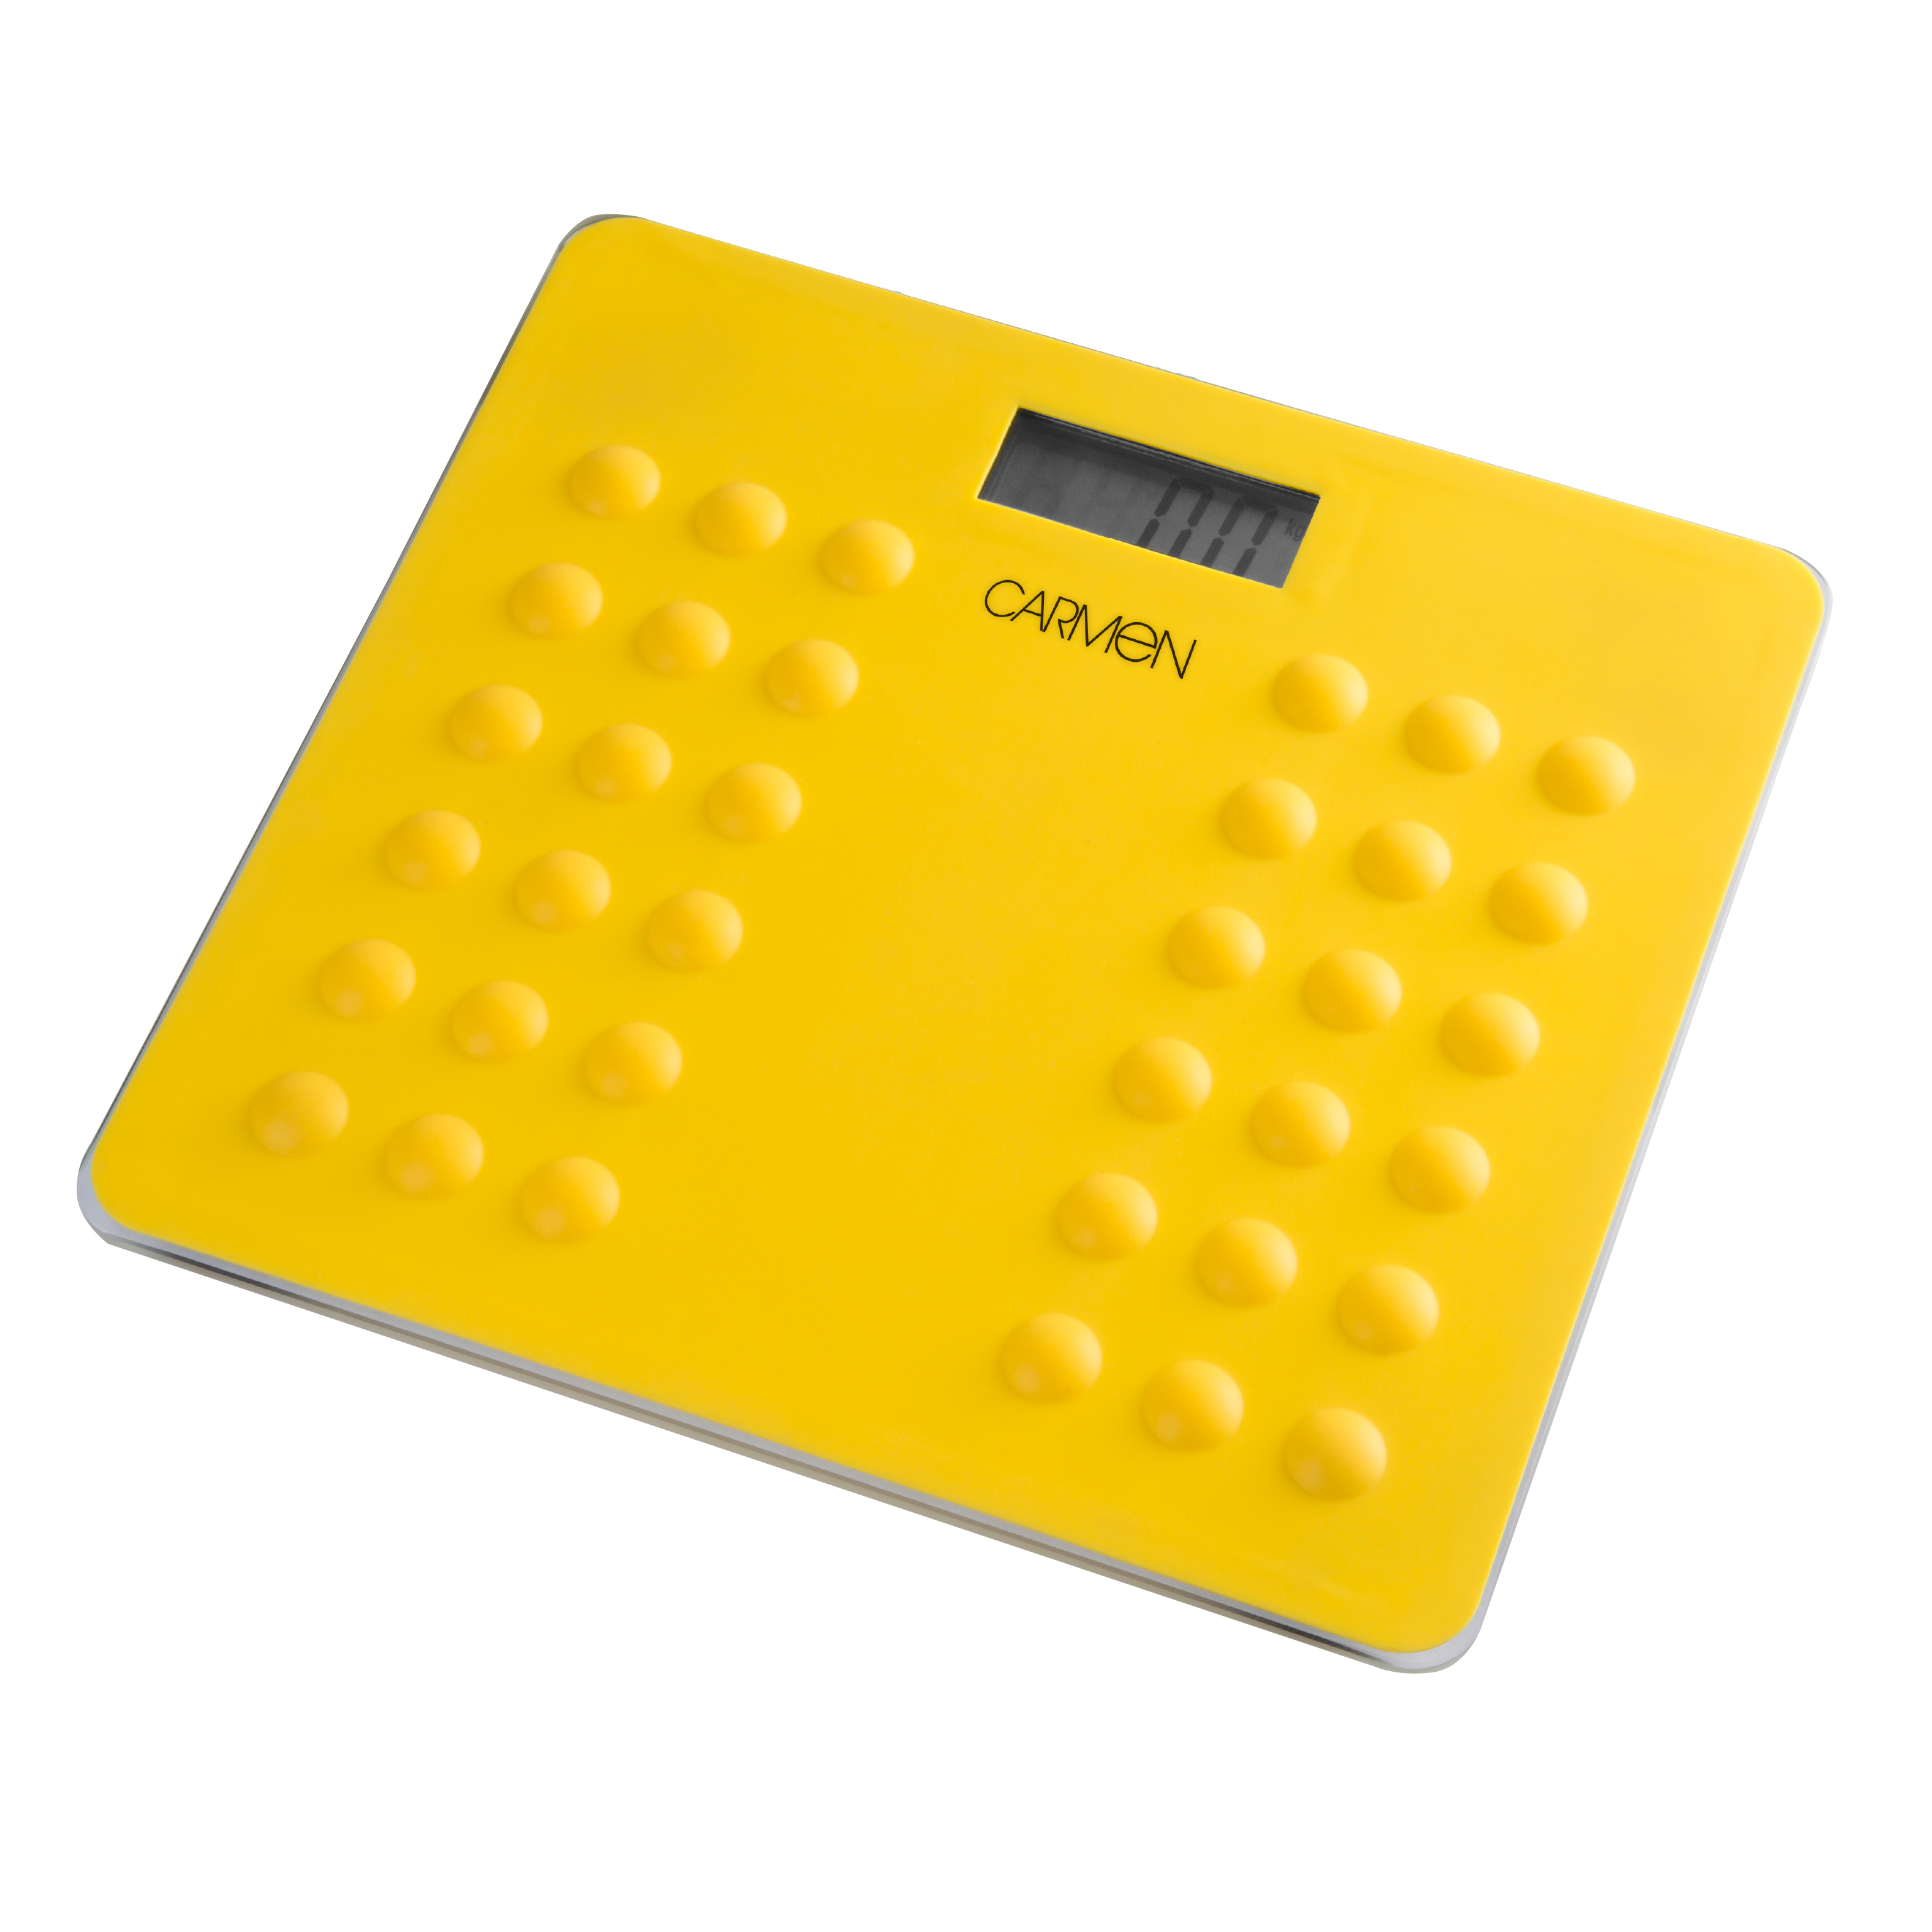 Carmen Electronic Personal Scale - Yellow No Colour